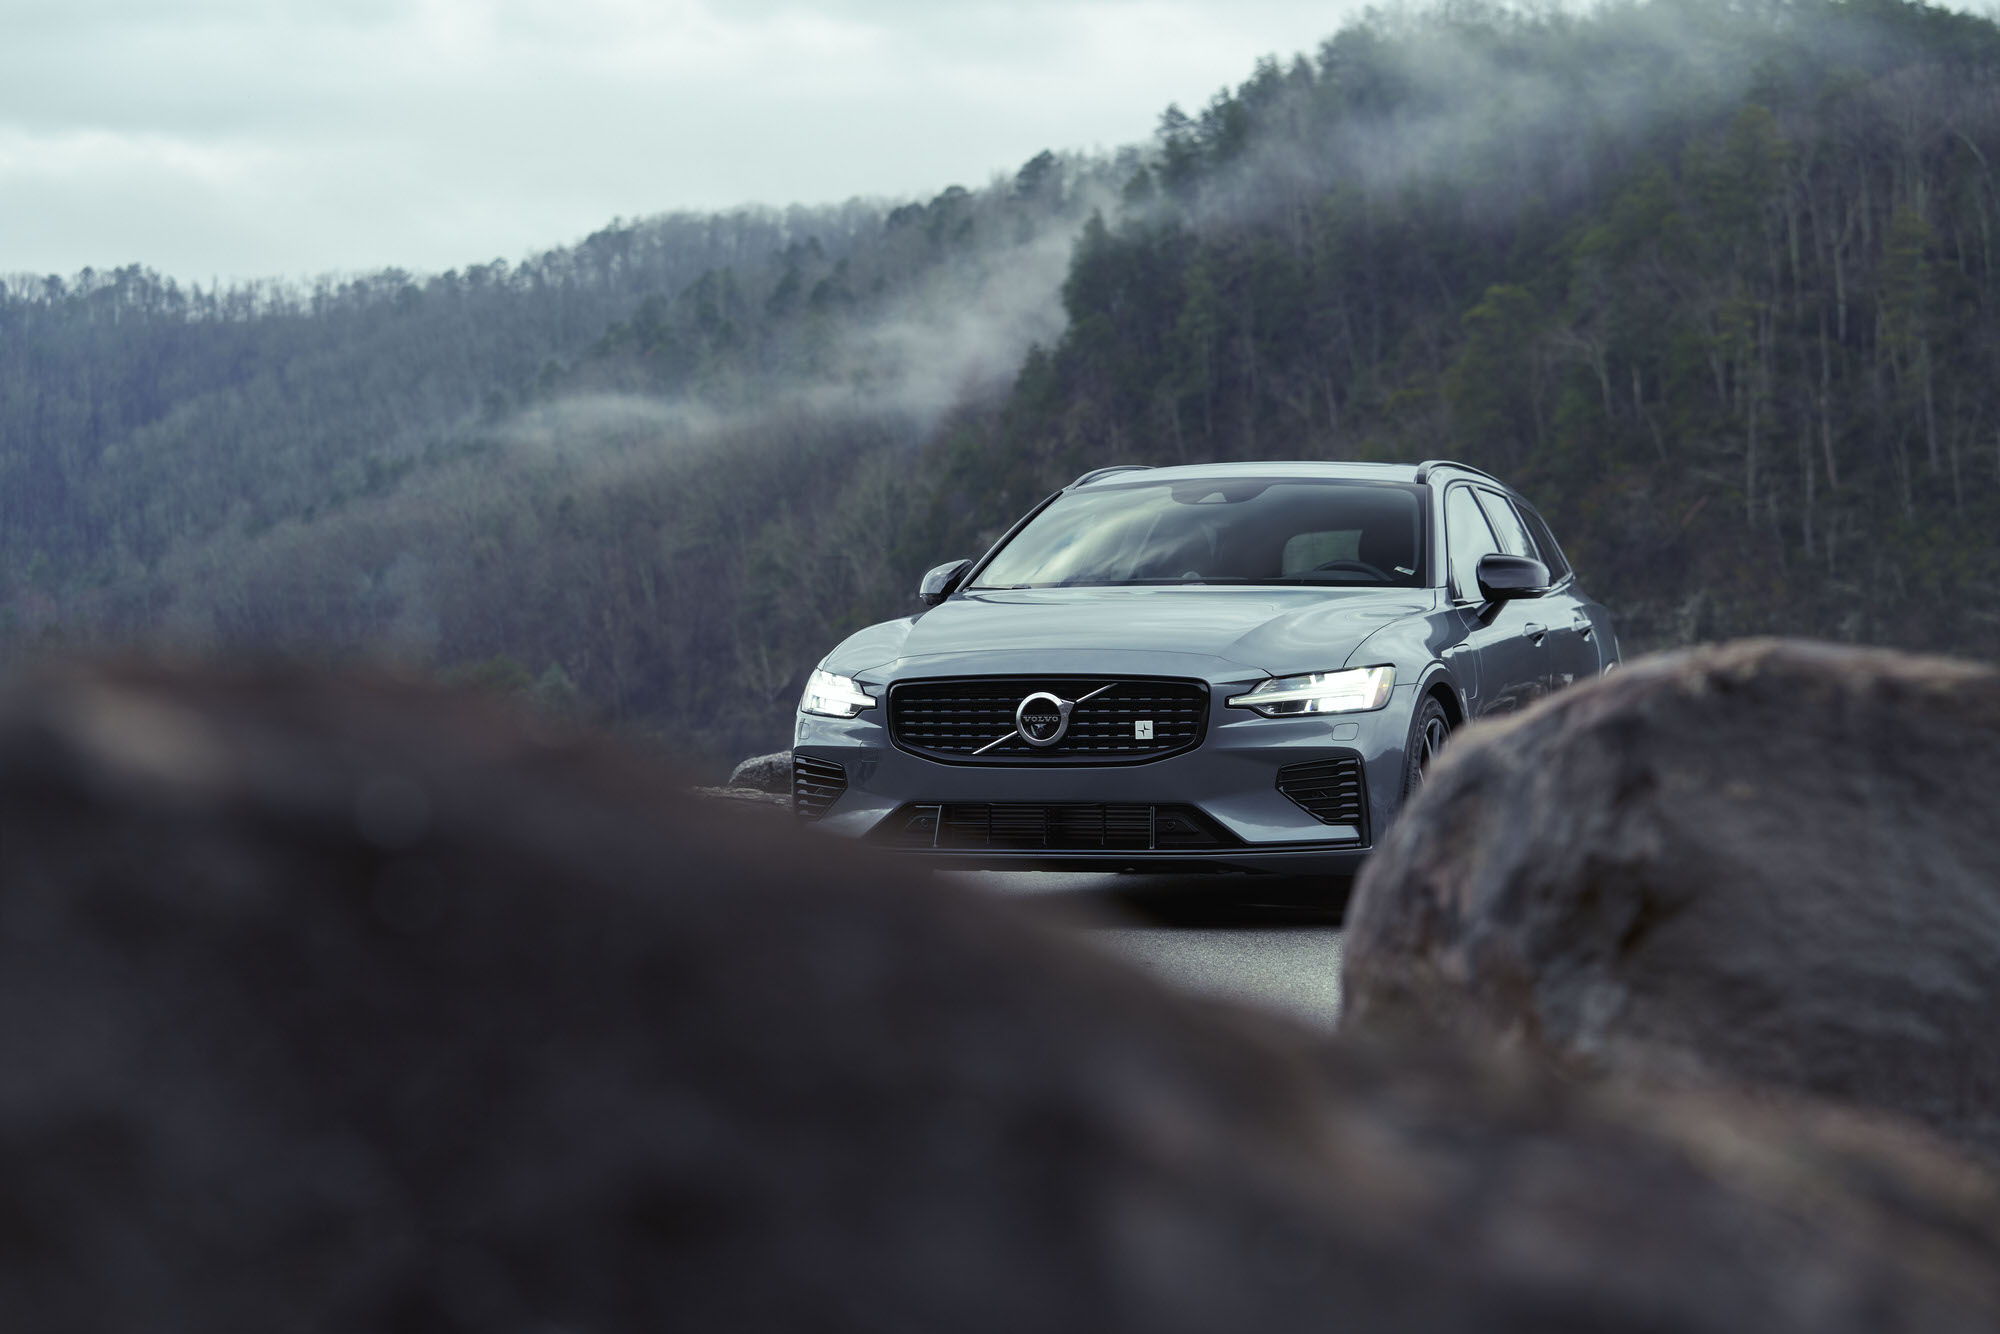 Volvo V60 T8 Polestar in the Tennessee mountains on a foggy morning.